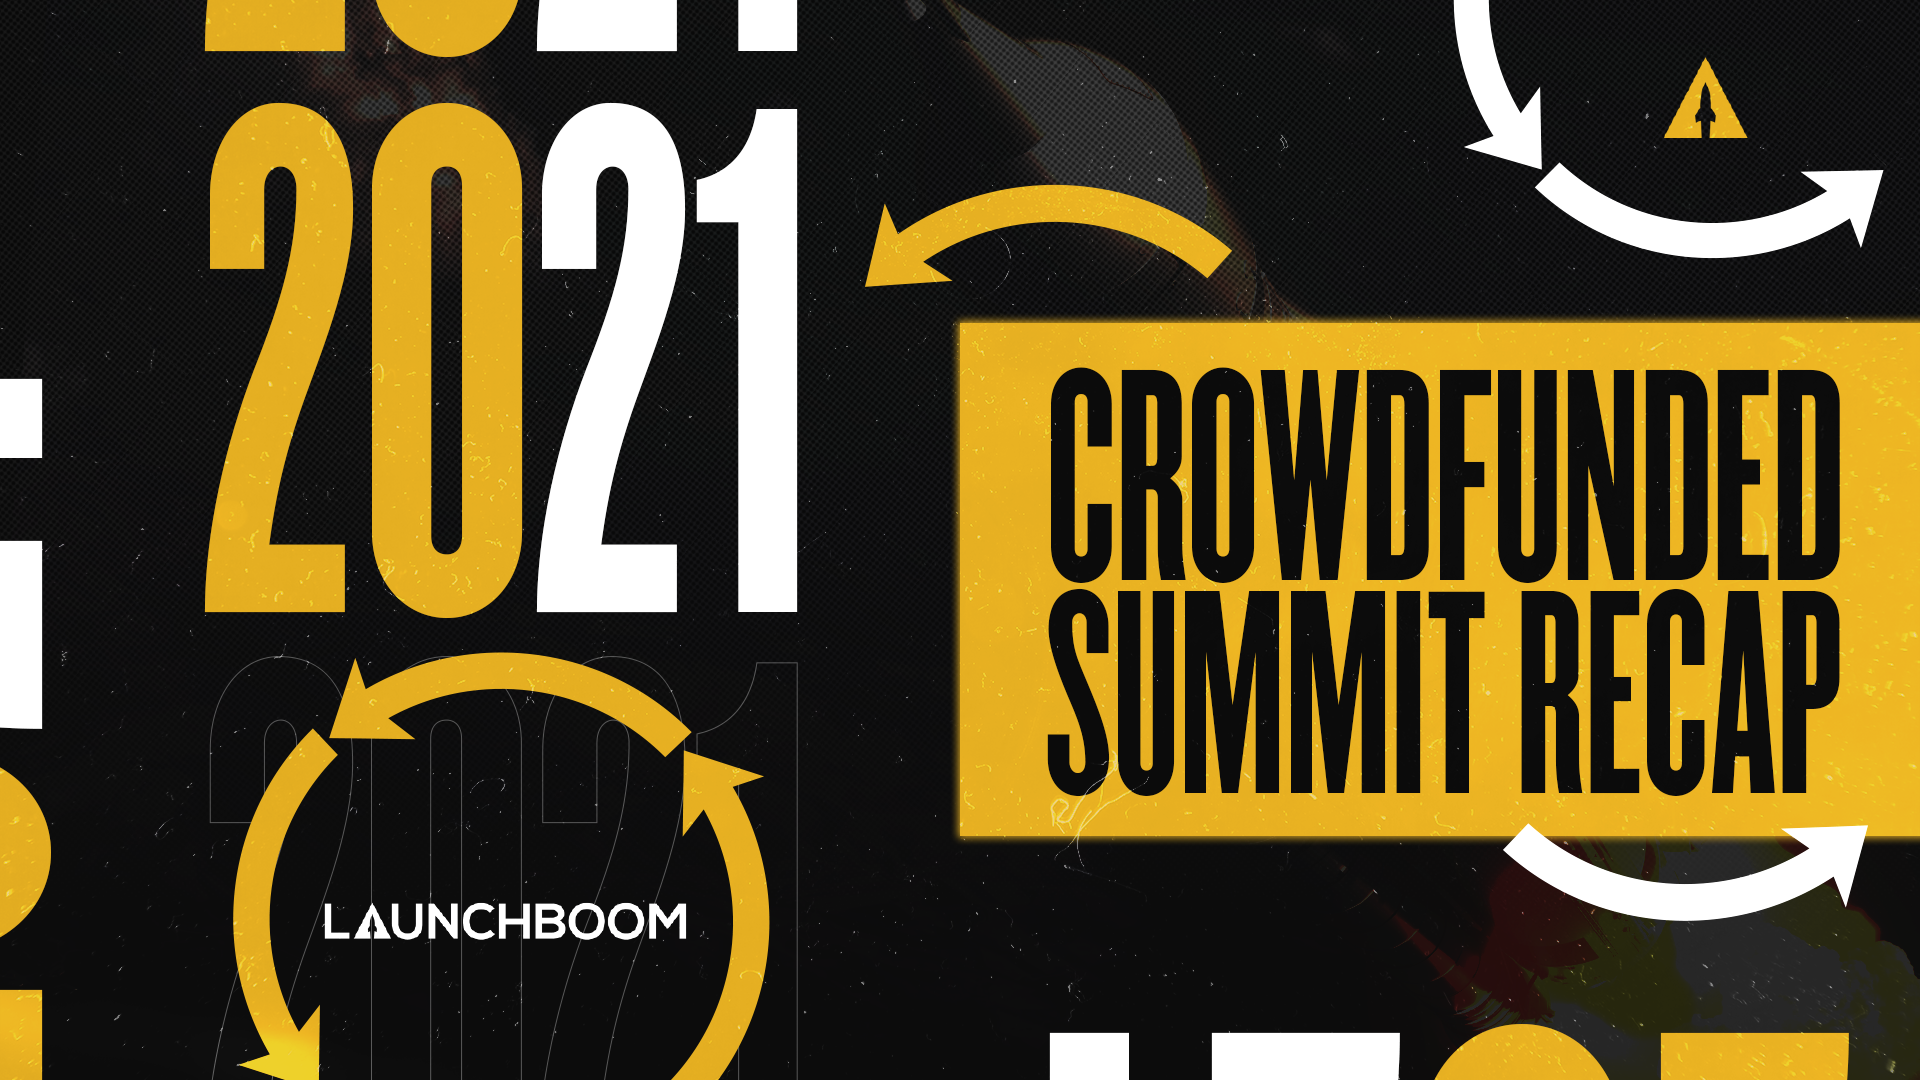 2021 Crowdfunded Summit Recap